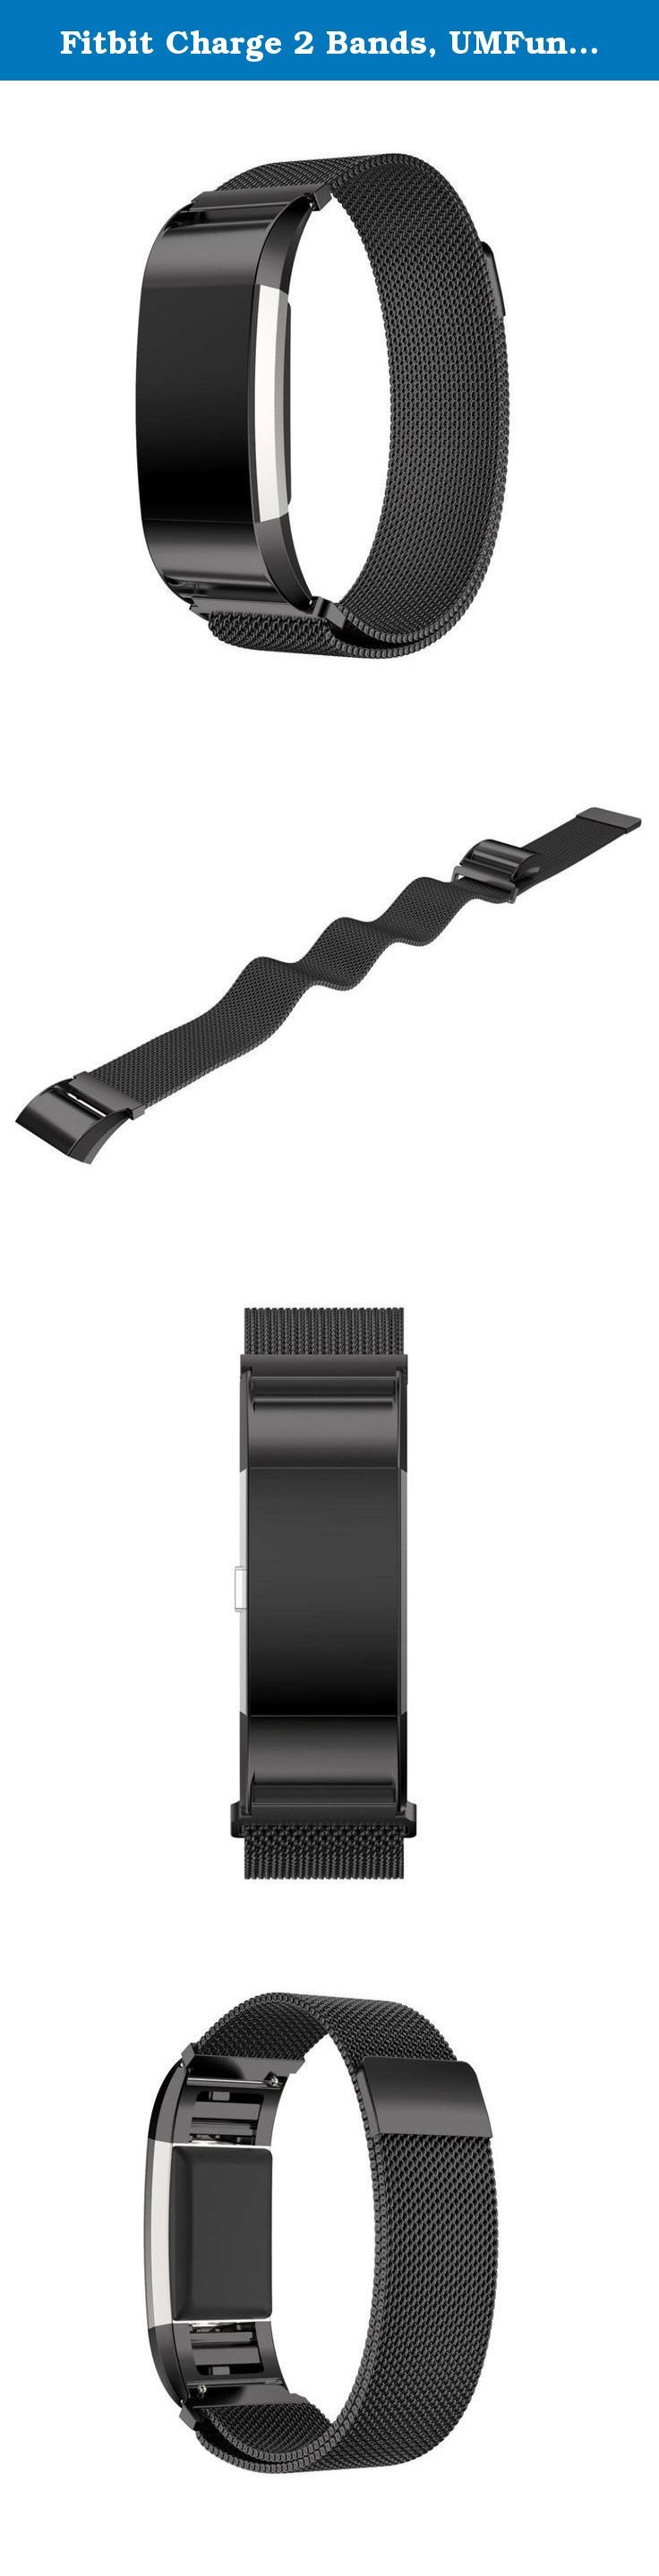 Fitbit Charge 2 Bands, UMFun Genuine Stainless Steel Bracelet Smart Watch Band Strap For Fitbit Charge 2 (Black). ☛: Package Include: ☛: 1pc Genuine Stainless Steel Bracelet Smart Watch Band Strap For Fitbit Charge 2 (without retail package).